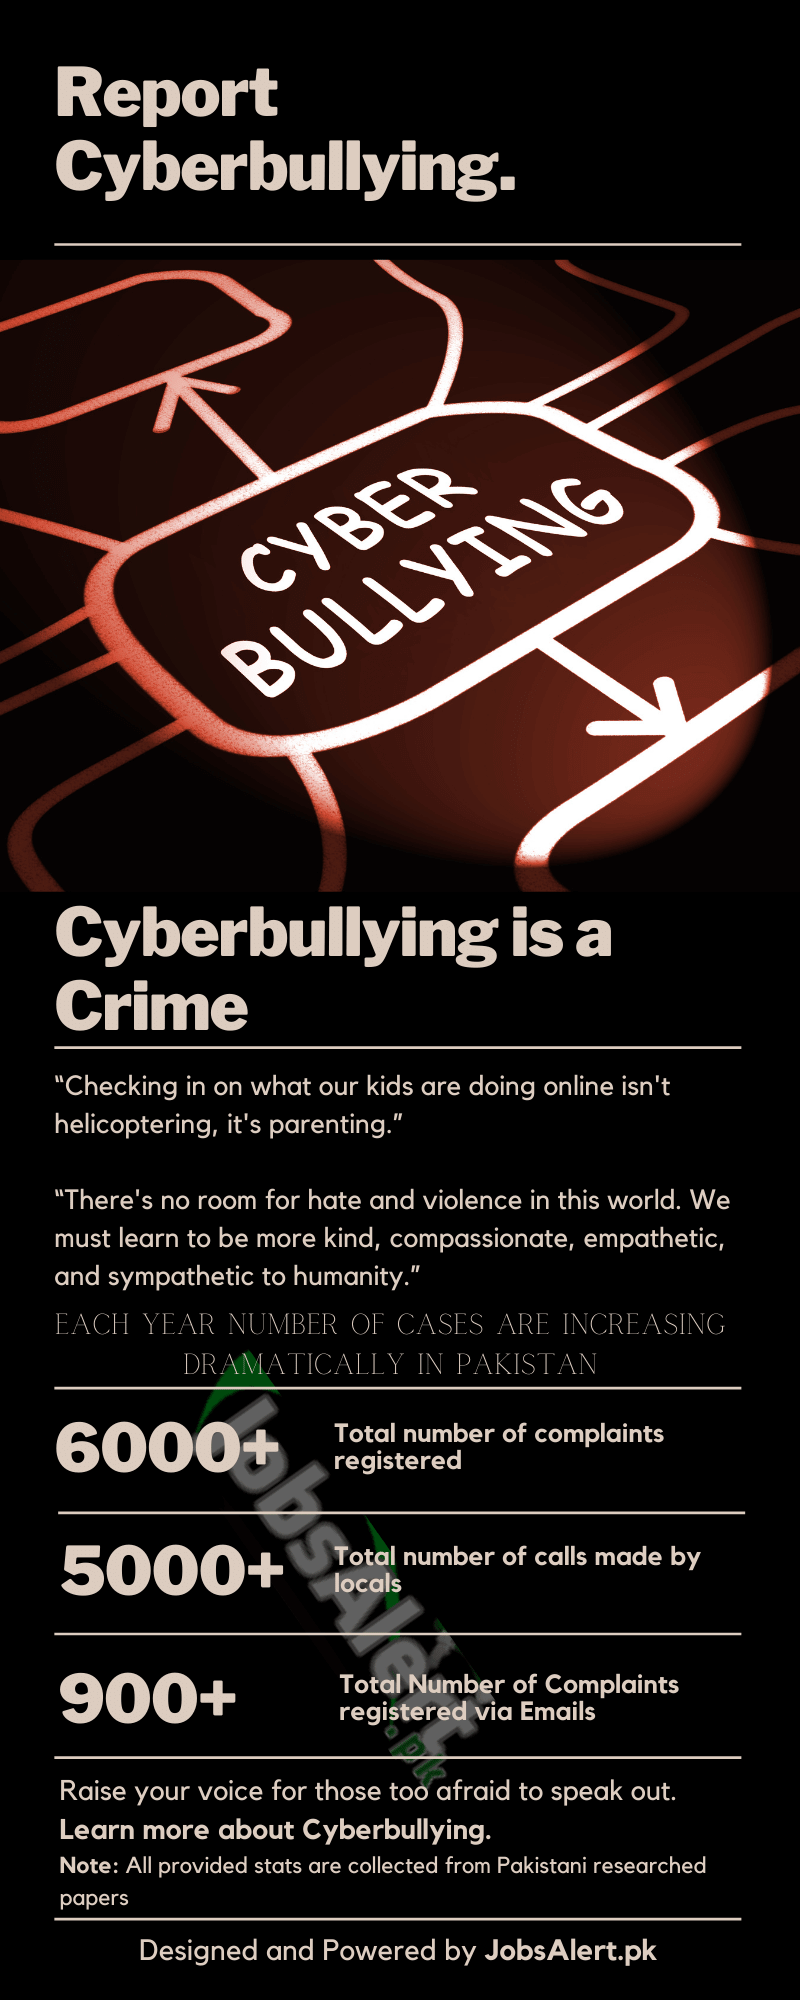 How to Report Cyberbullying in Pakistan?